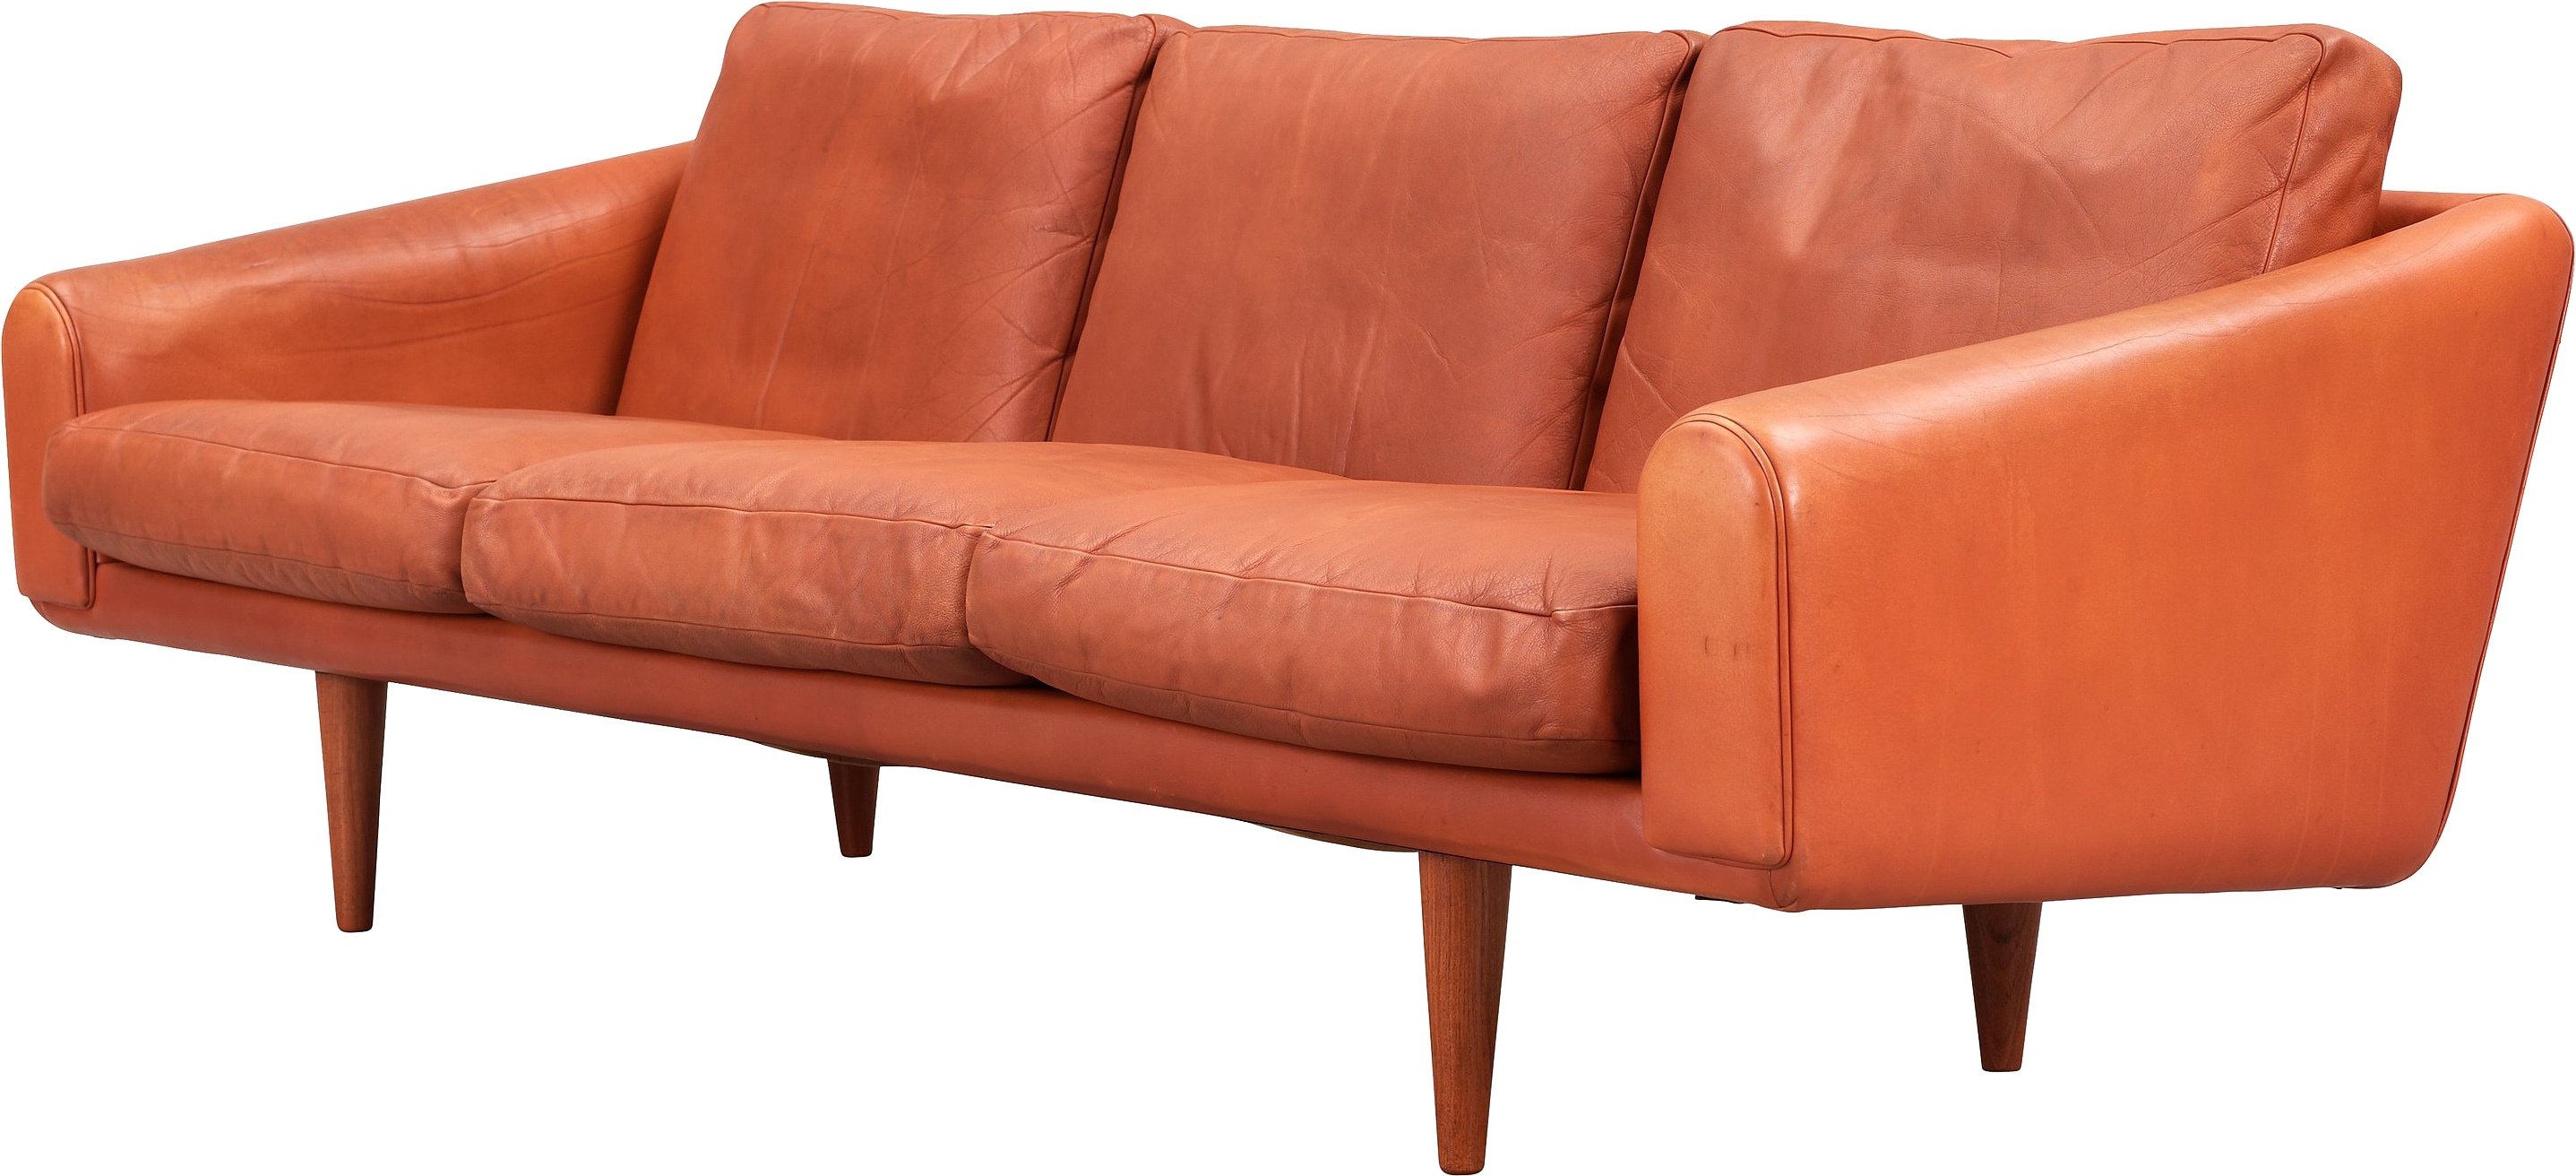 Transparent couch sofa. Png image purepng free